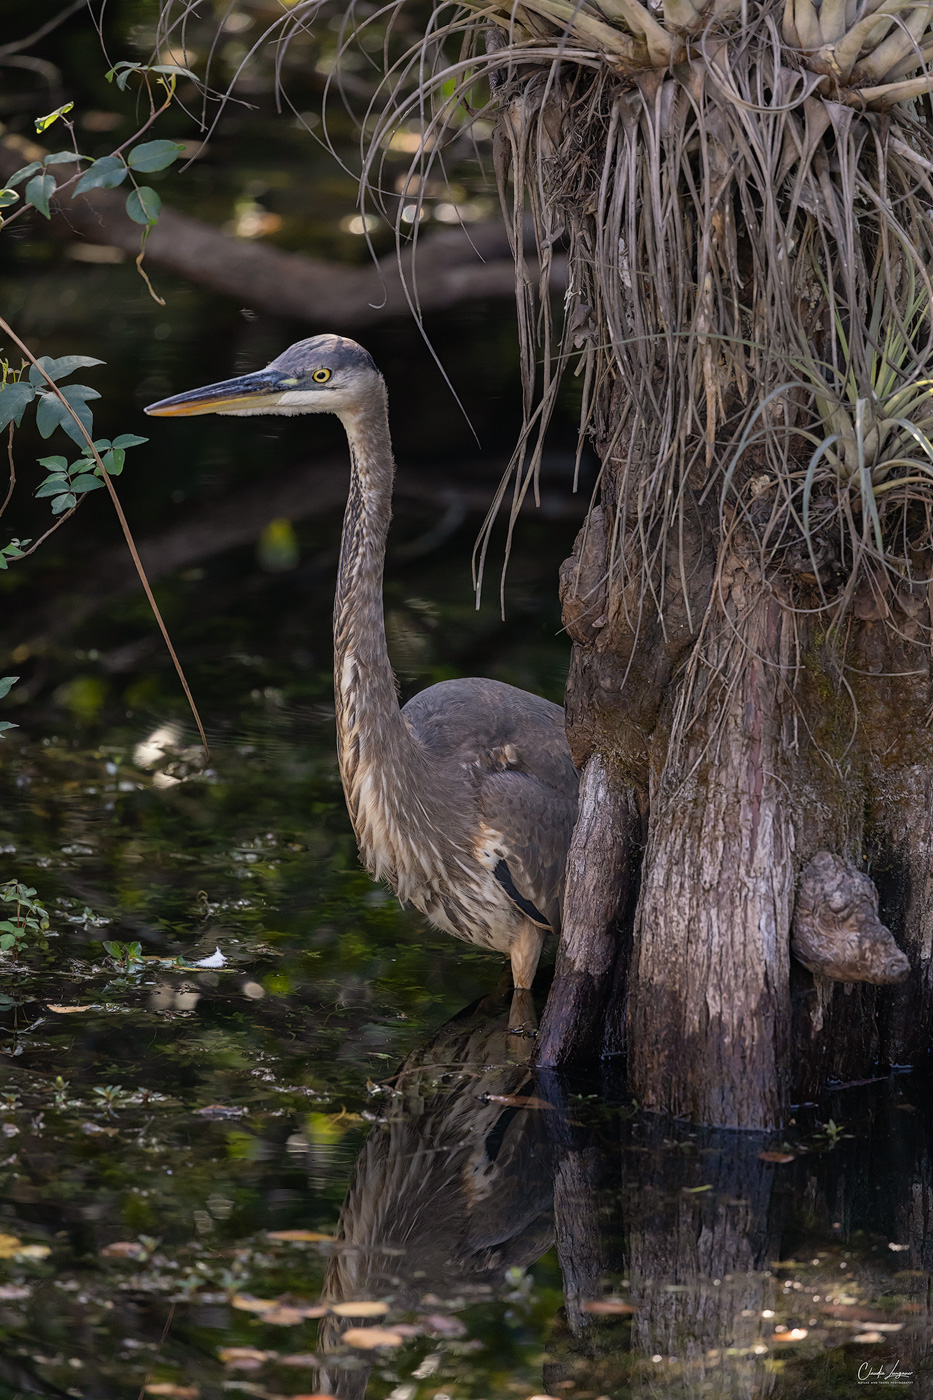 View of Gray Heron in Everglades National Park in Florida.